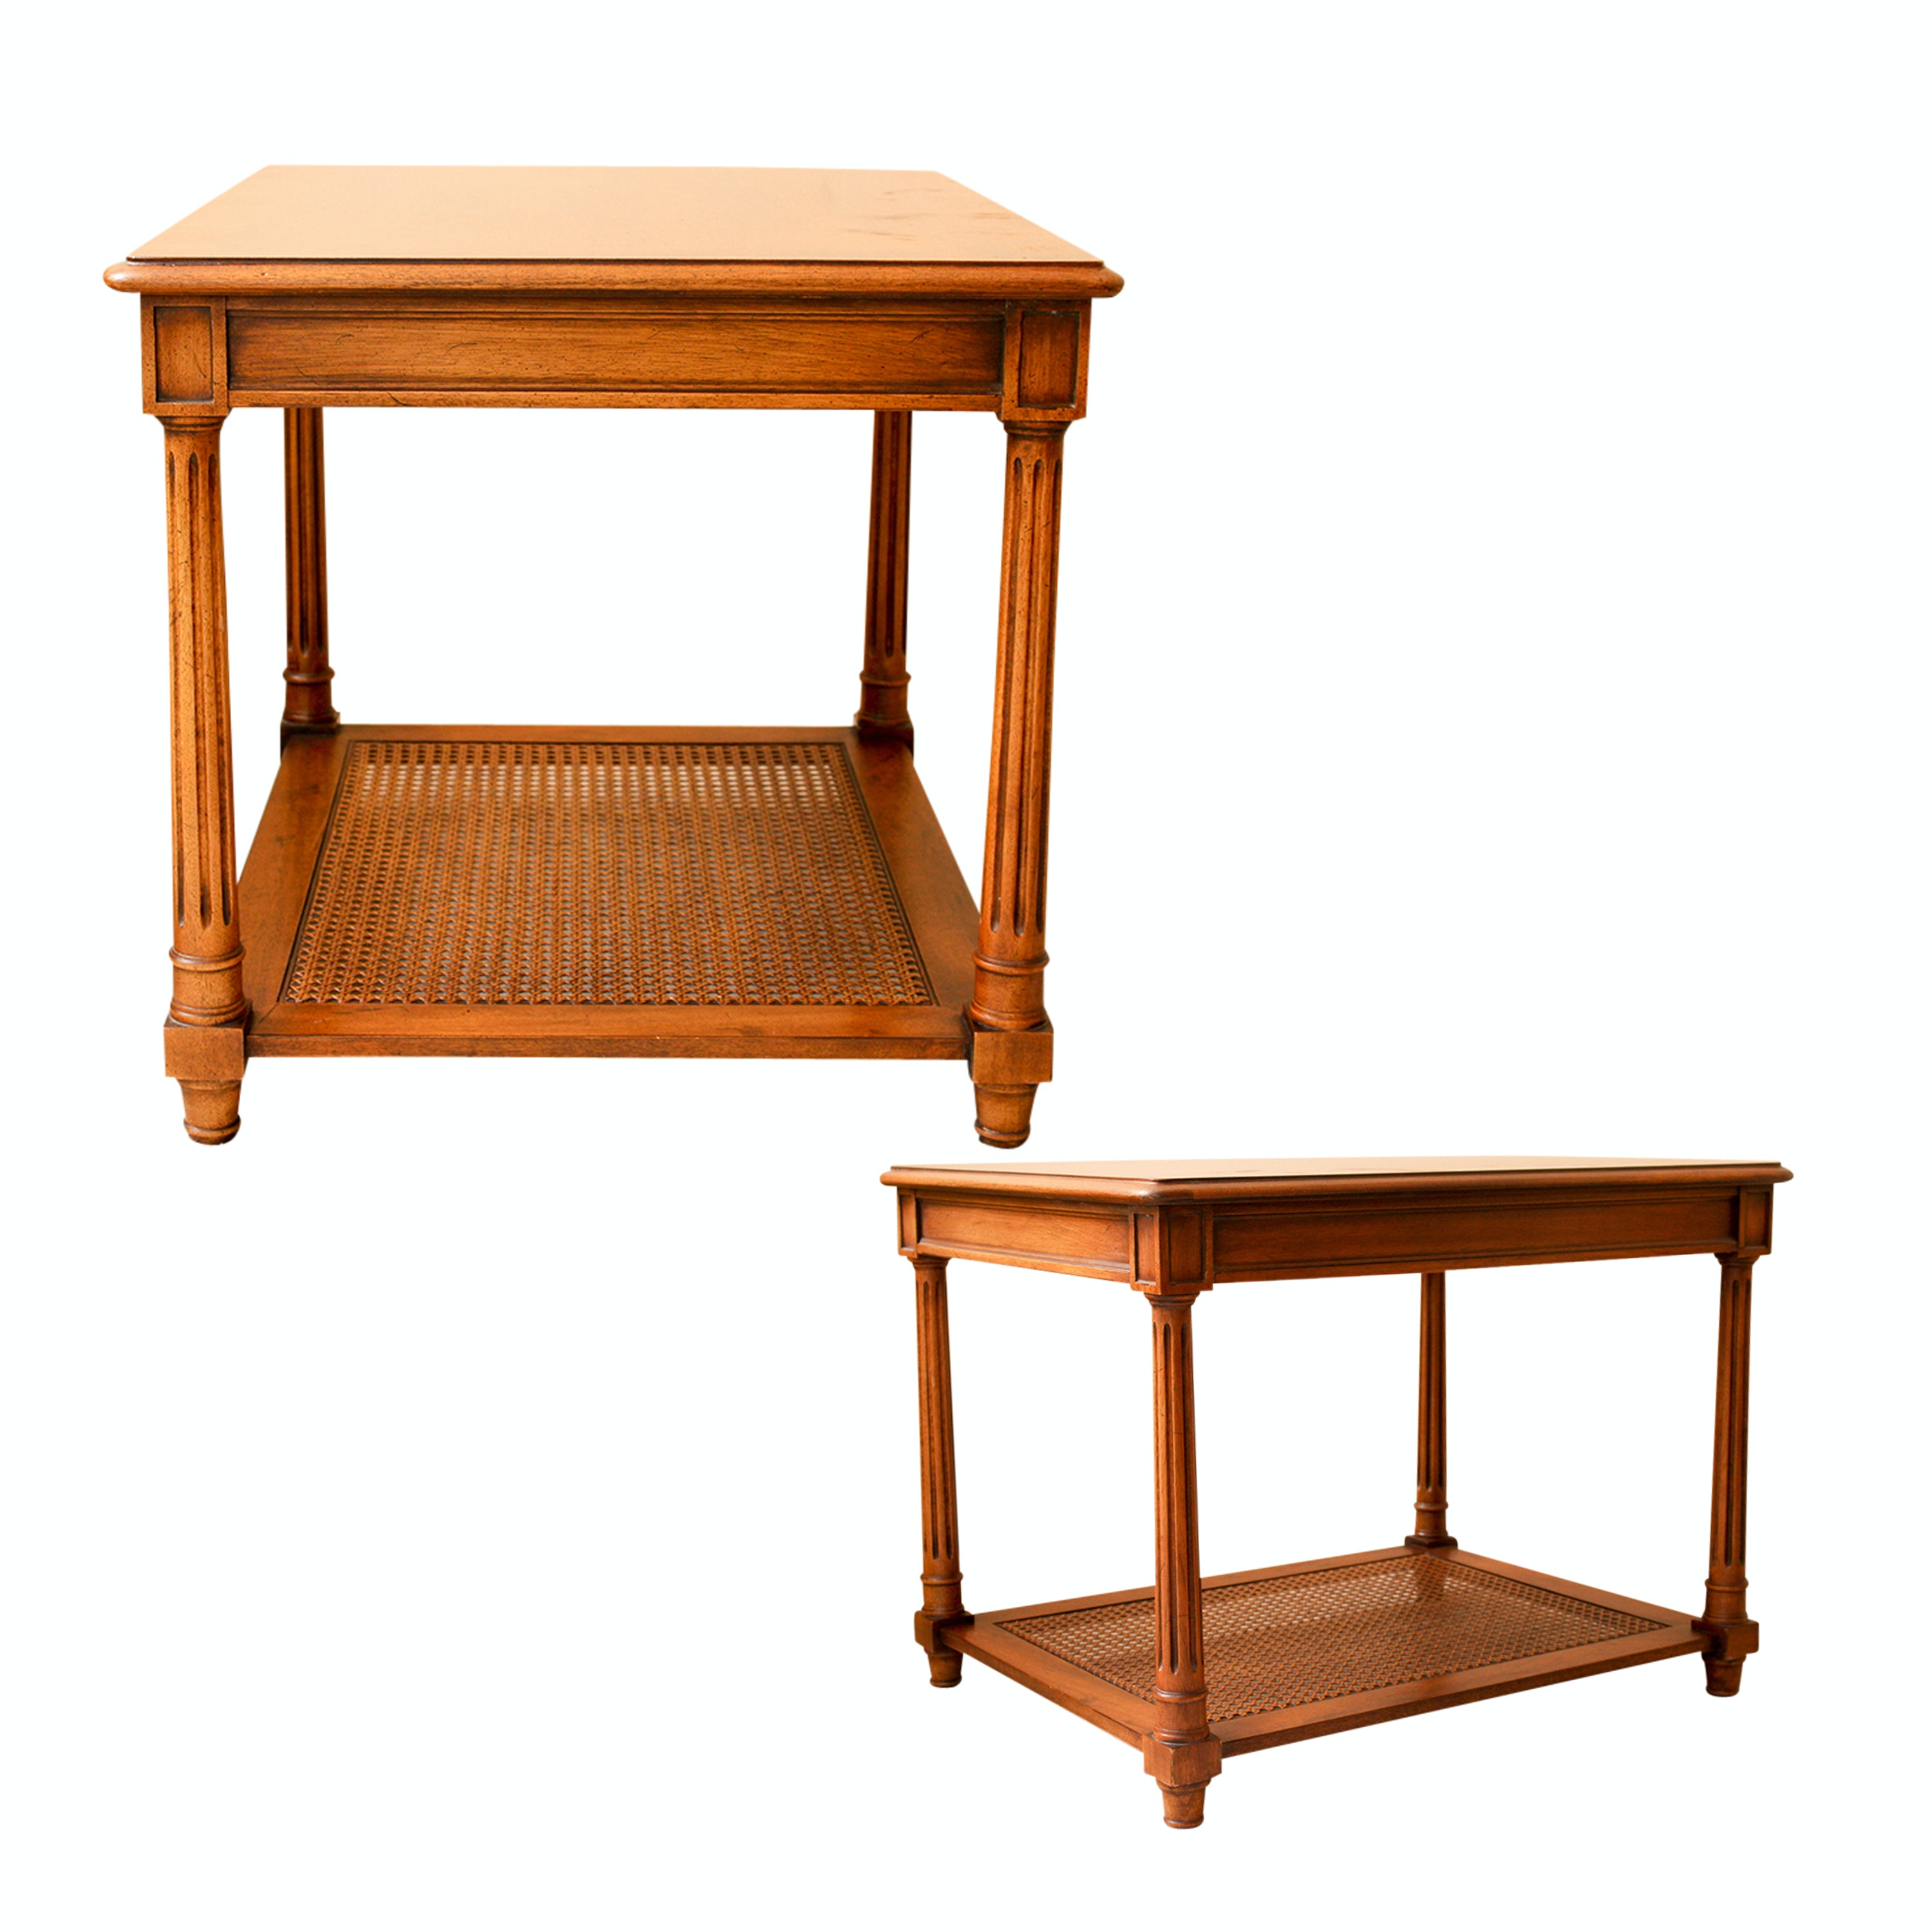 Henredon Wood and Cane End Tables